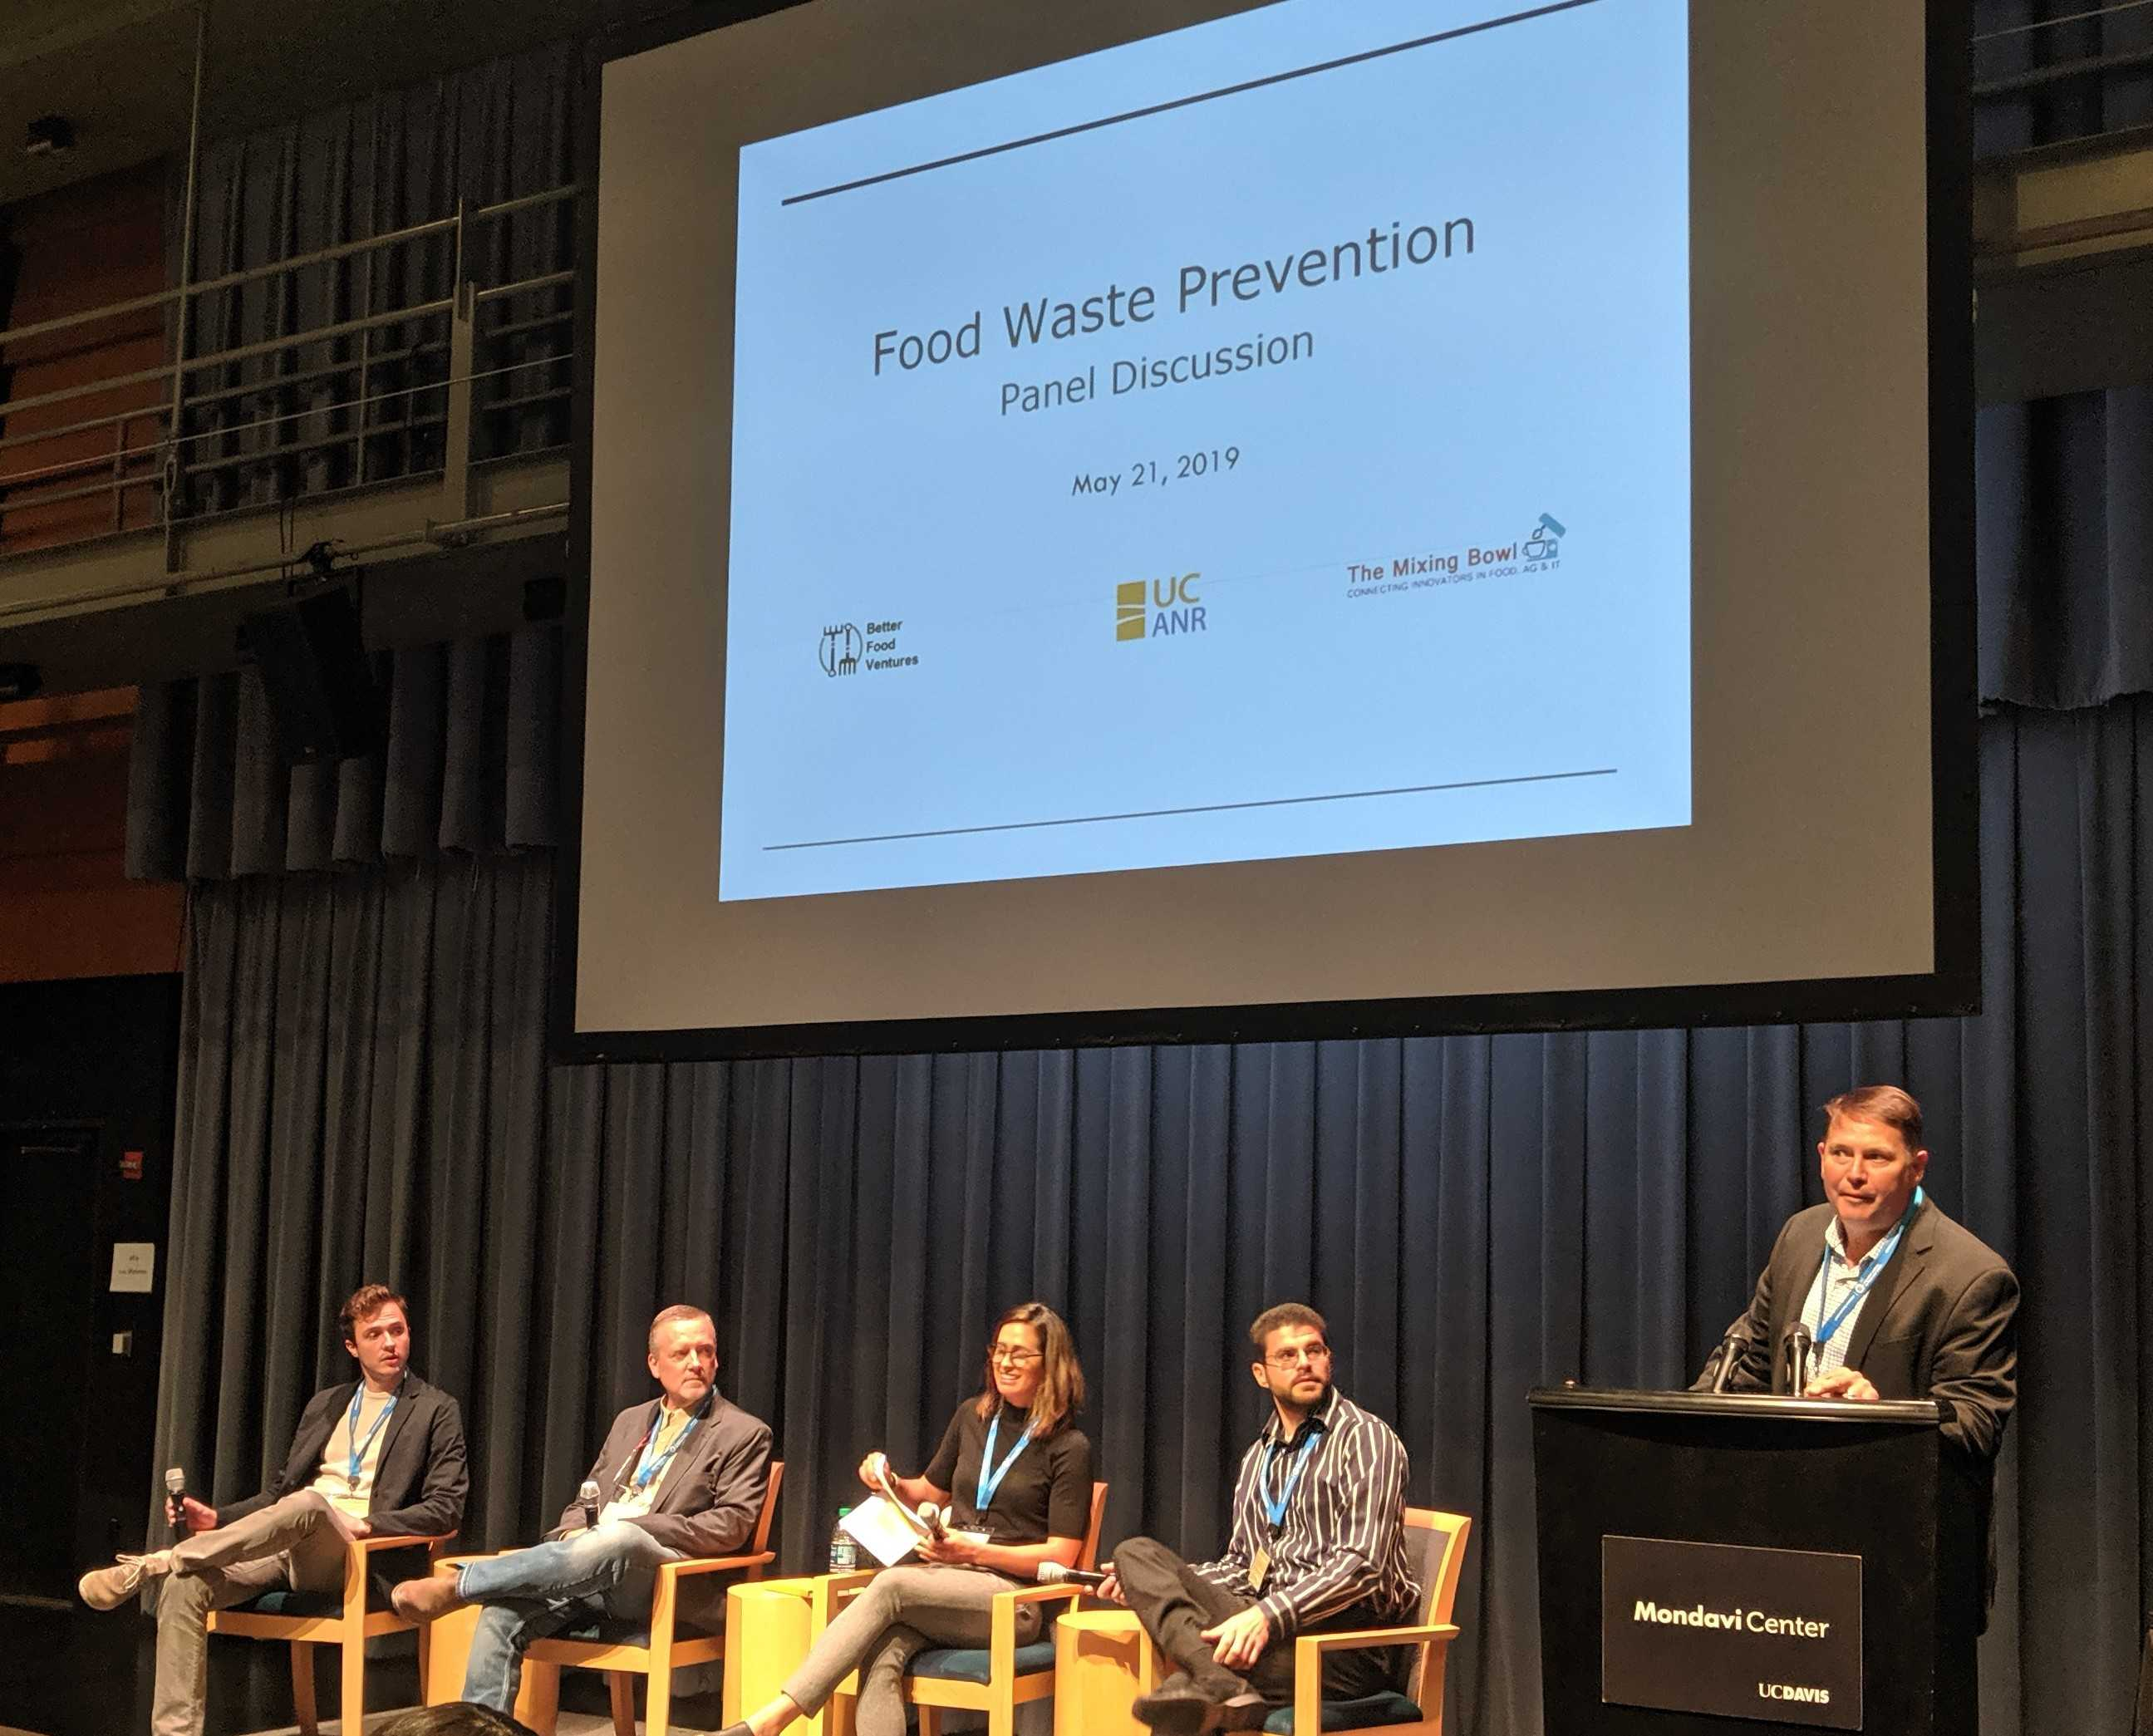 Innovation Institute for Food and Health 2019 Innovator Summit Serves up a Compelling Panel Discussion on Food Waste & Innovative Solutions to this Global Problem - The Vine